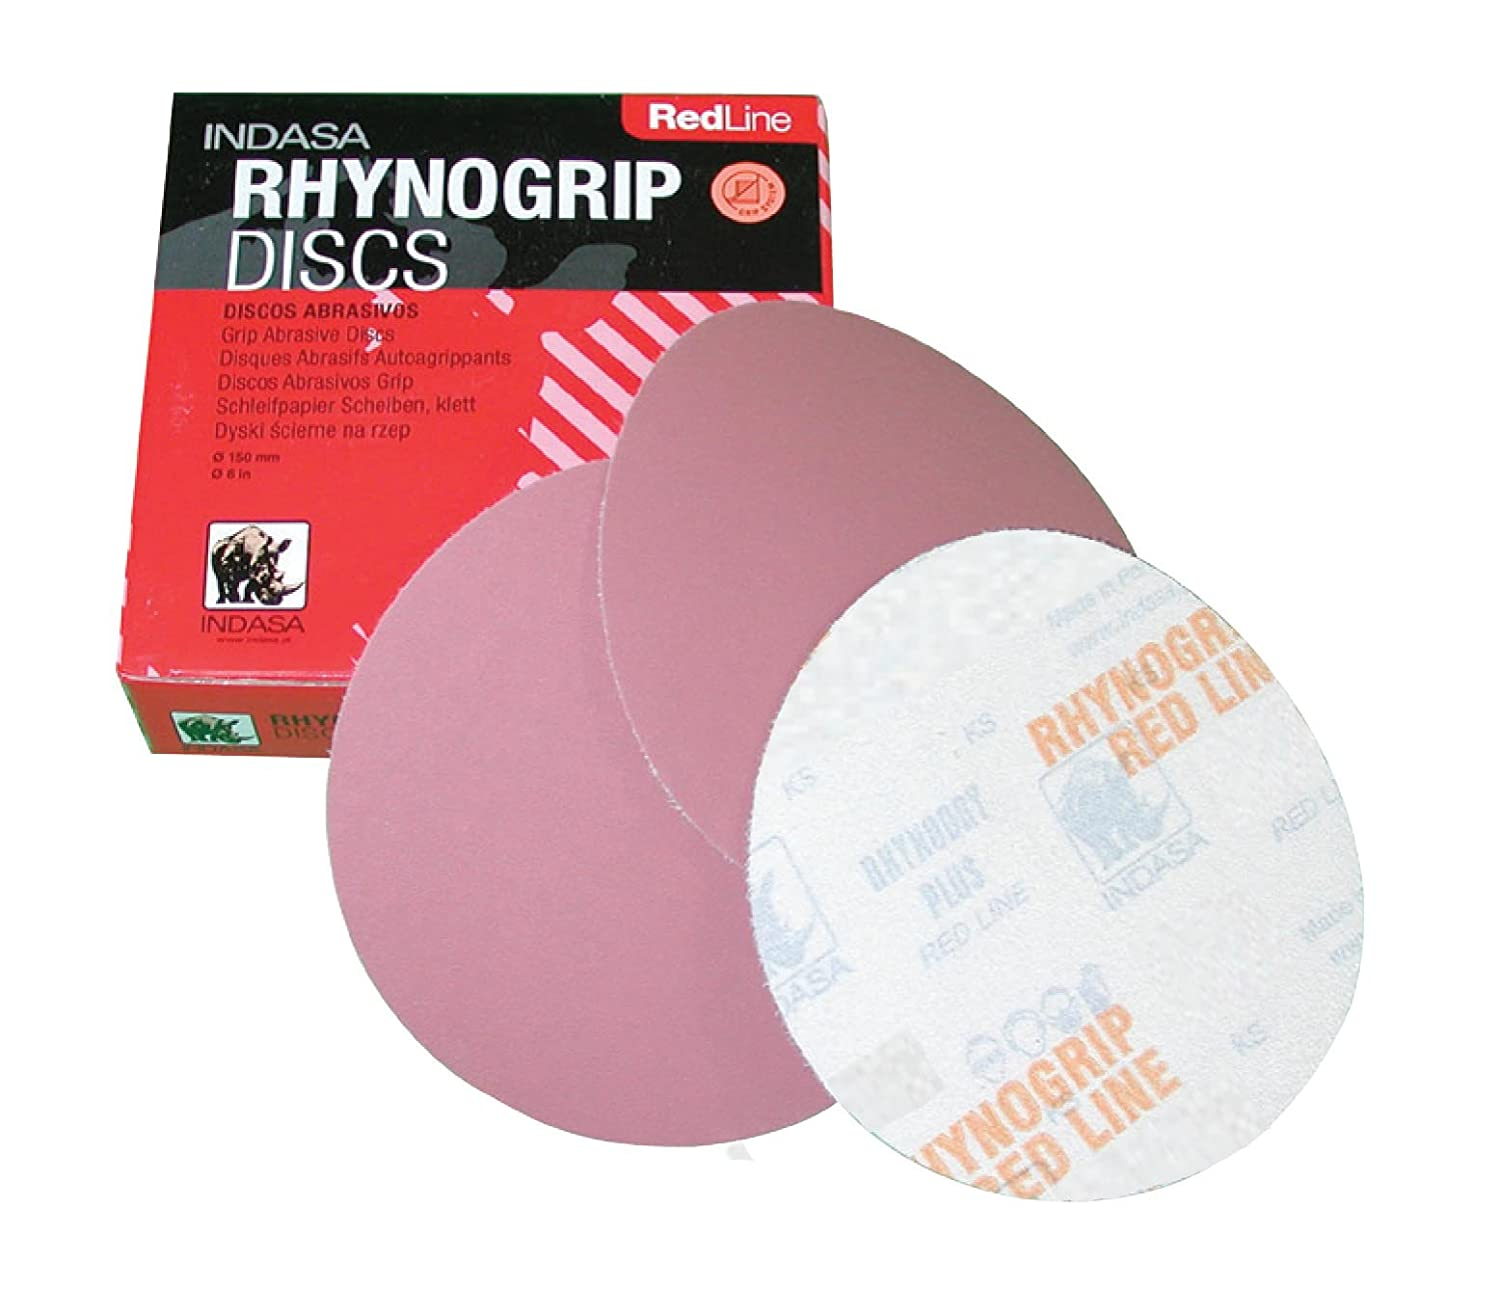 INDASA REDLINE XL RHYNOGRIP Hook and Loop - SOLID DISCS 6' 220 GRIT 50/box